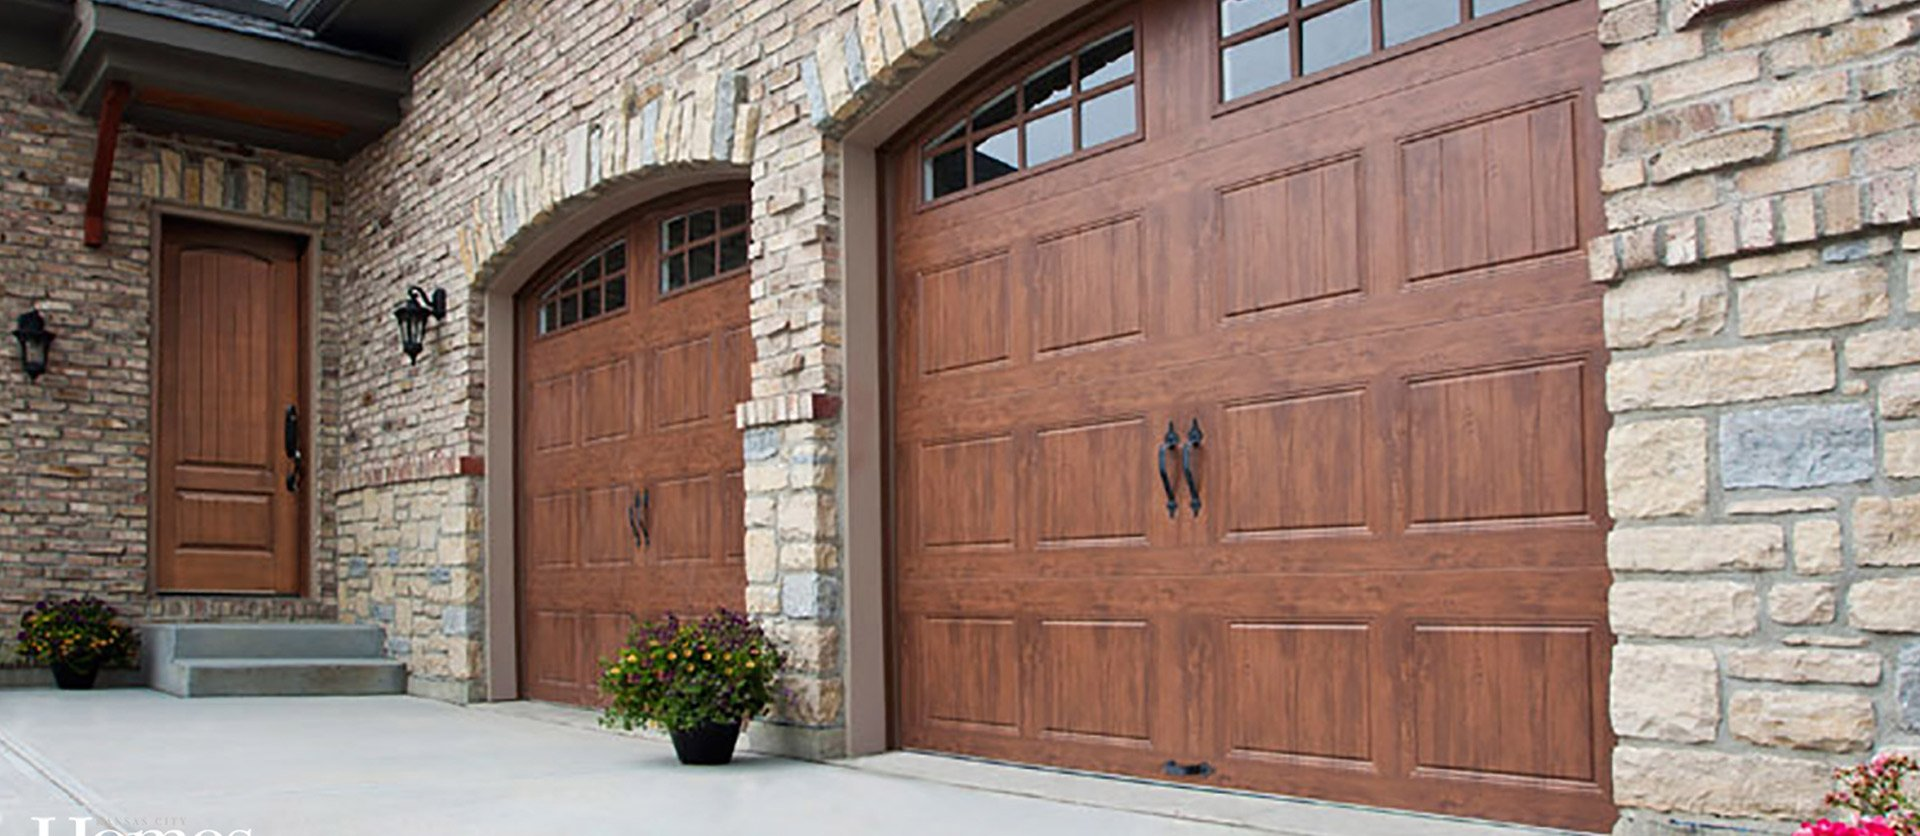 Lowell Garage Door Repair | Affordable Garage Door | Garage Door ...